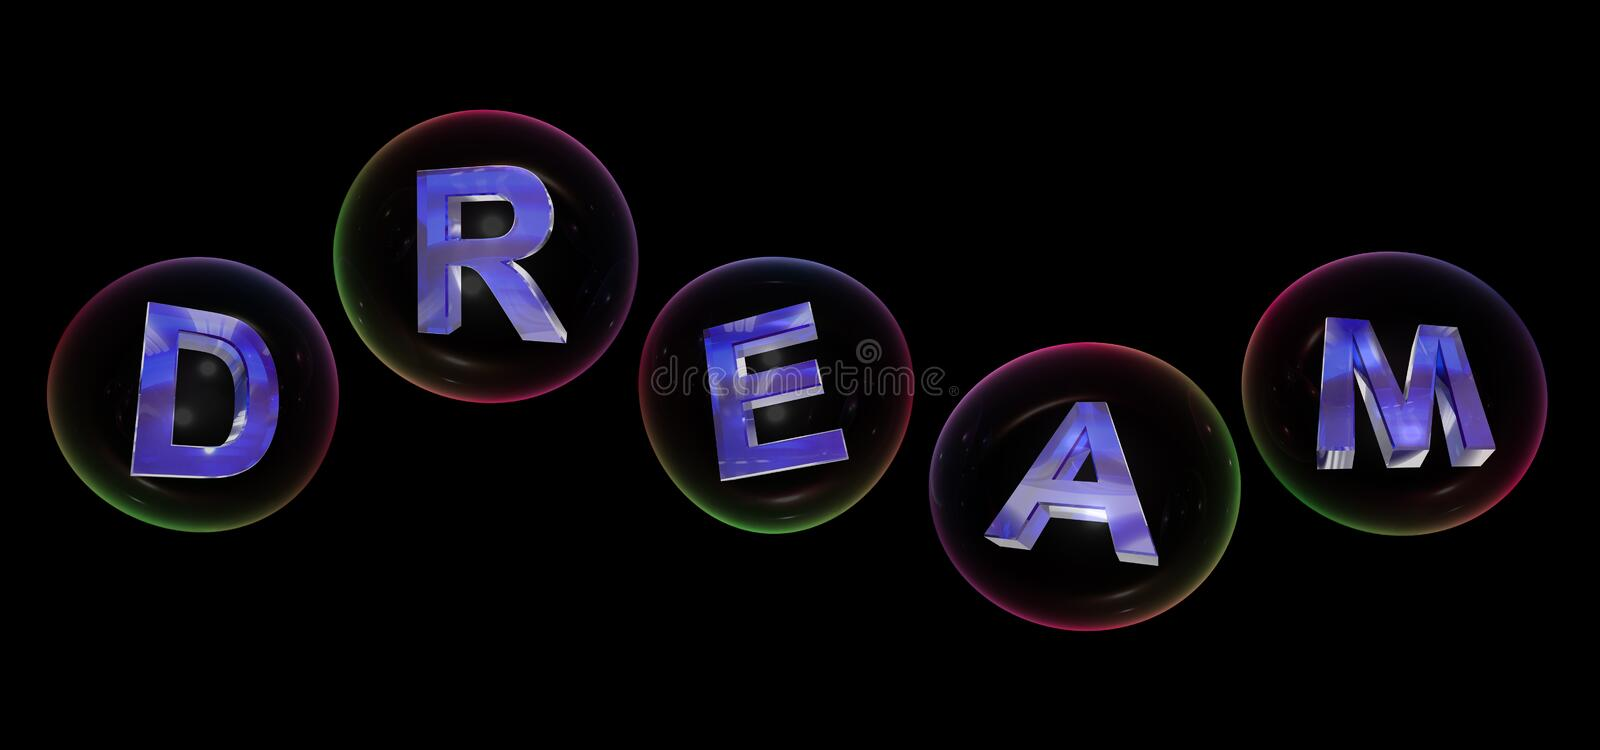 The dream word in bubble royalty free illustration